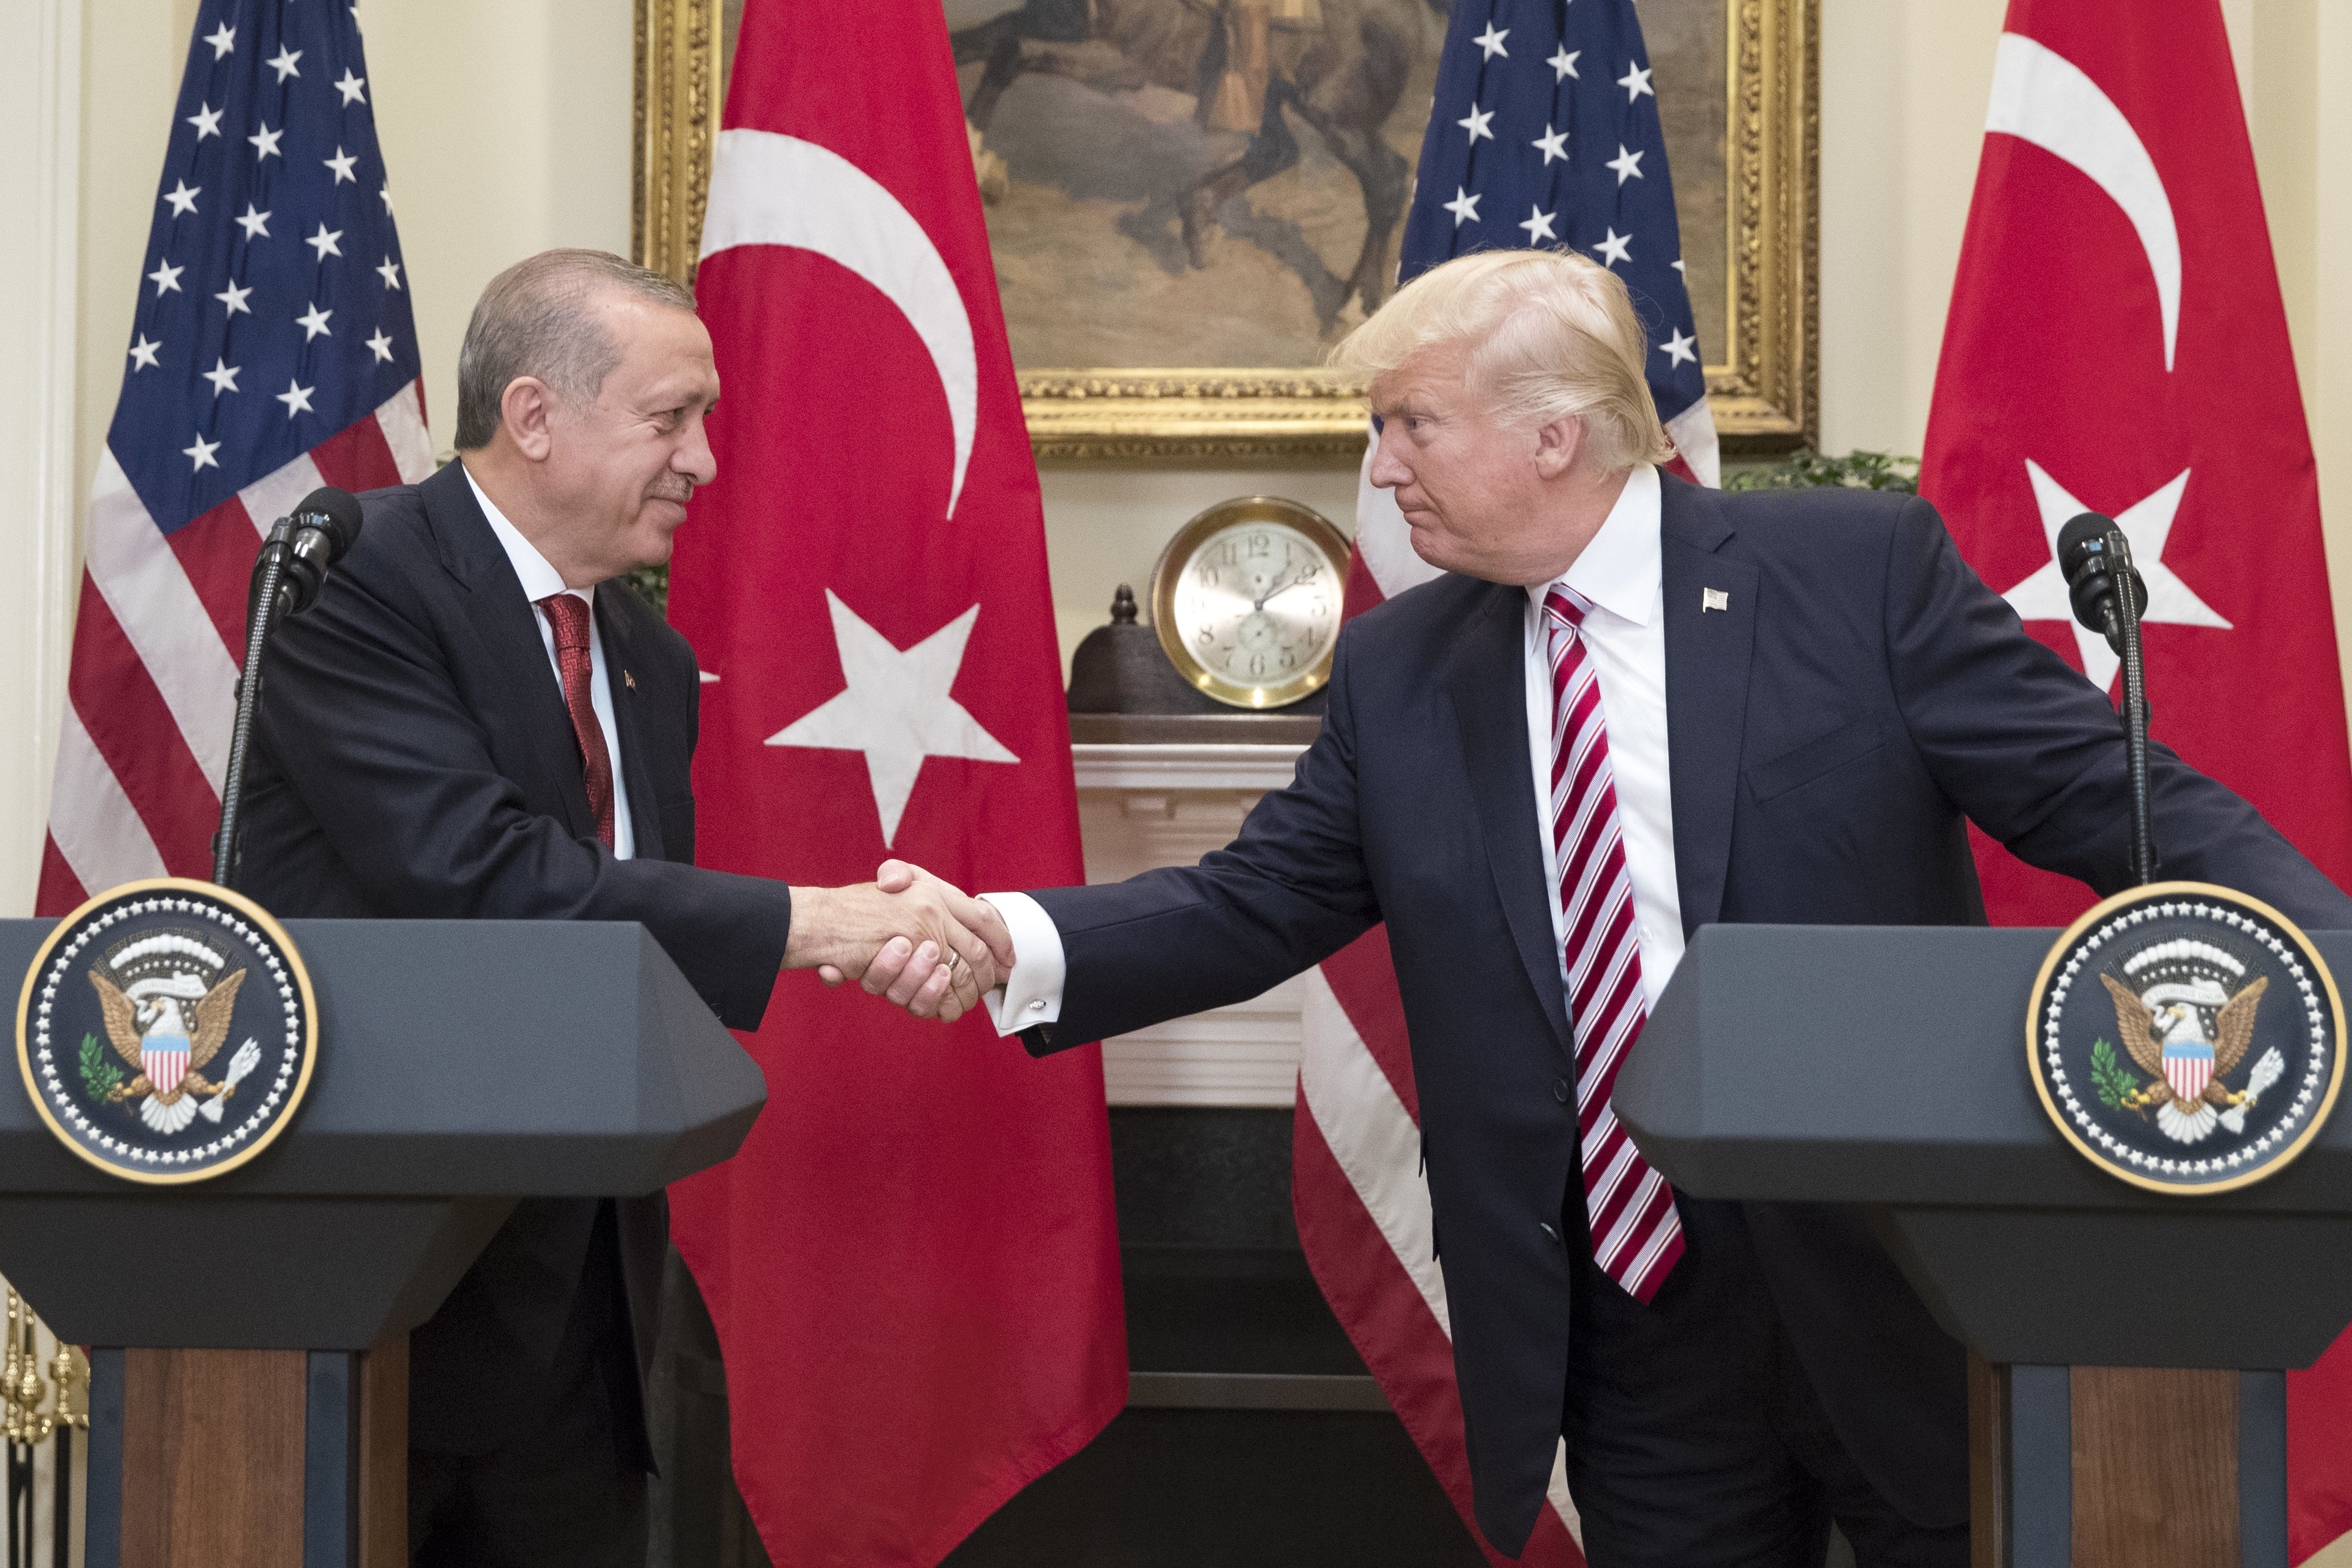 U.S. President Donald Trump, right, shakes hands with Recep Tayyip Erdogan, Turkey's president, during a news conference at the Roosevelt Room of the White House in Washington, D.C., U.S., on Tuesday, May 16, 2017. Erdogan said he's looking forward to a 'decisive meeting' with his U.S. counterpart Trump, whose decision to arm Kurdish groups against Islamic State in Syria has stoked tensions between the two NATO members. Photographer: Michael Reynolds/Pool via Bloomberg